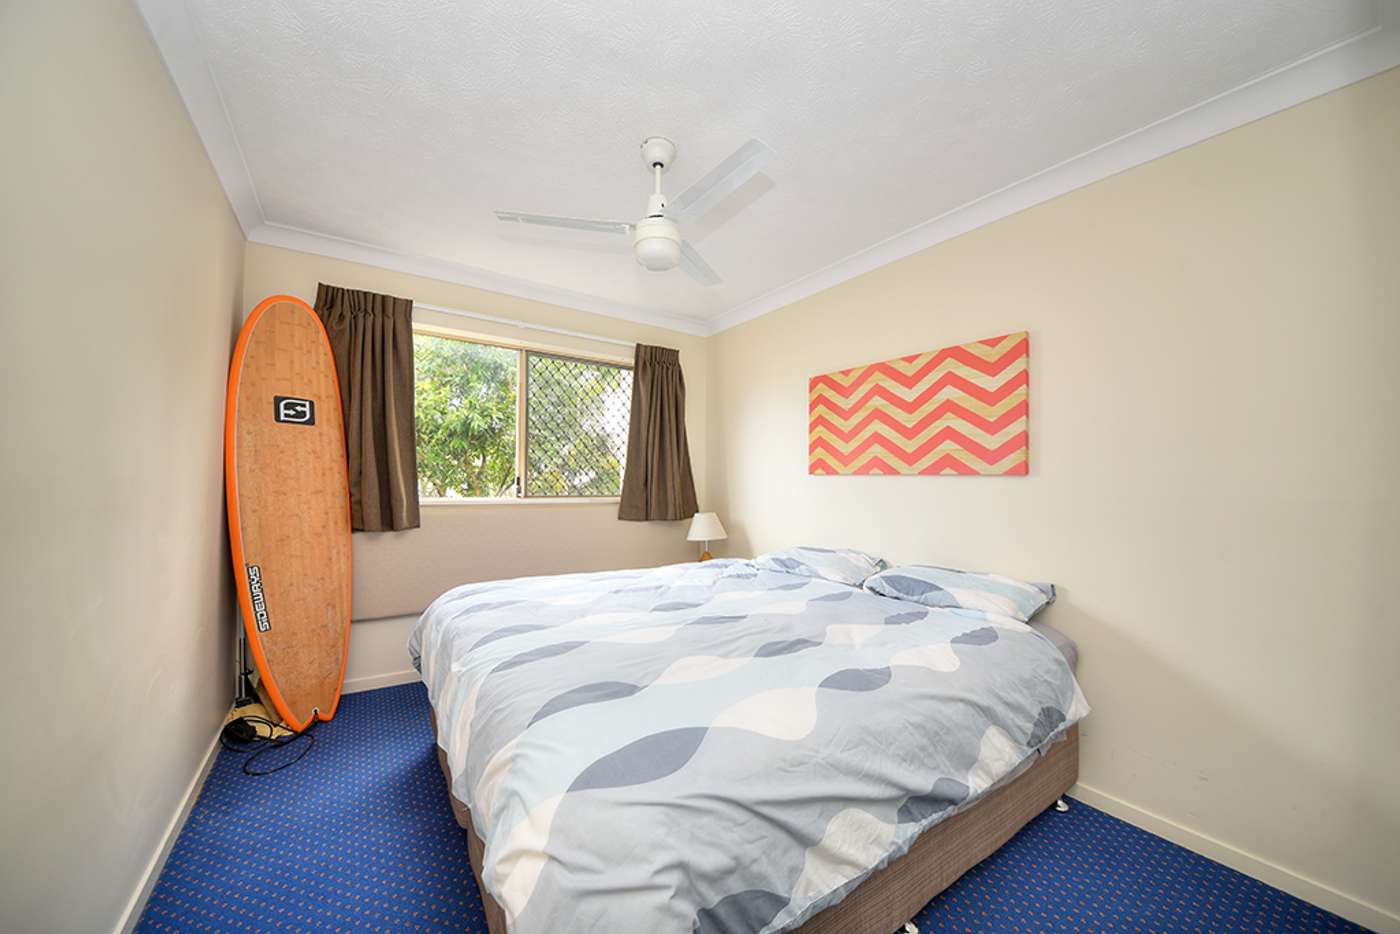 Seventh view of Homely apartment listing, 83/2342 Gold Coast Highway, Mermaid Beach QLD 4218